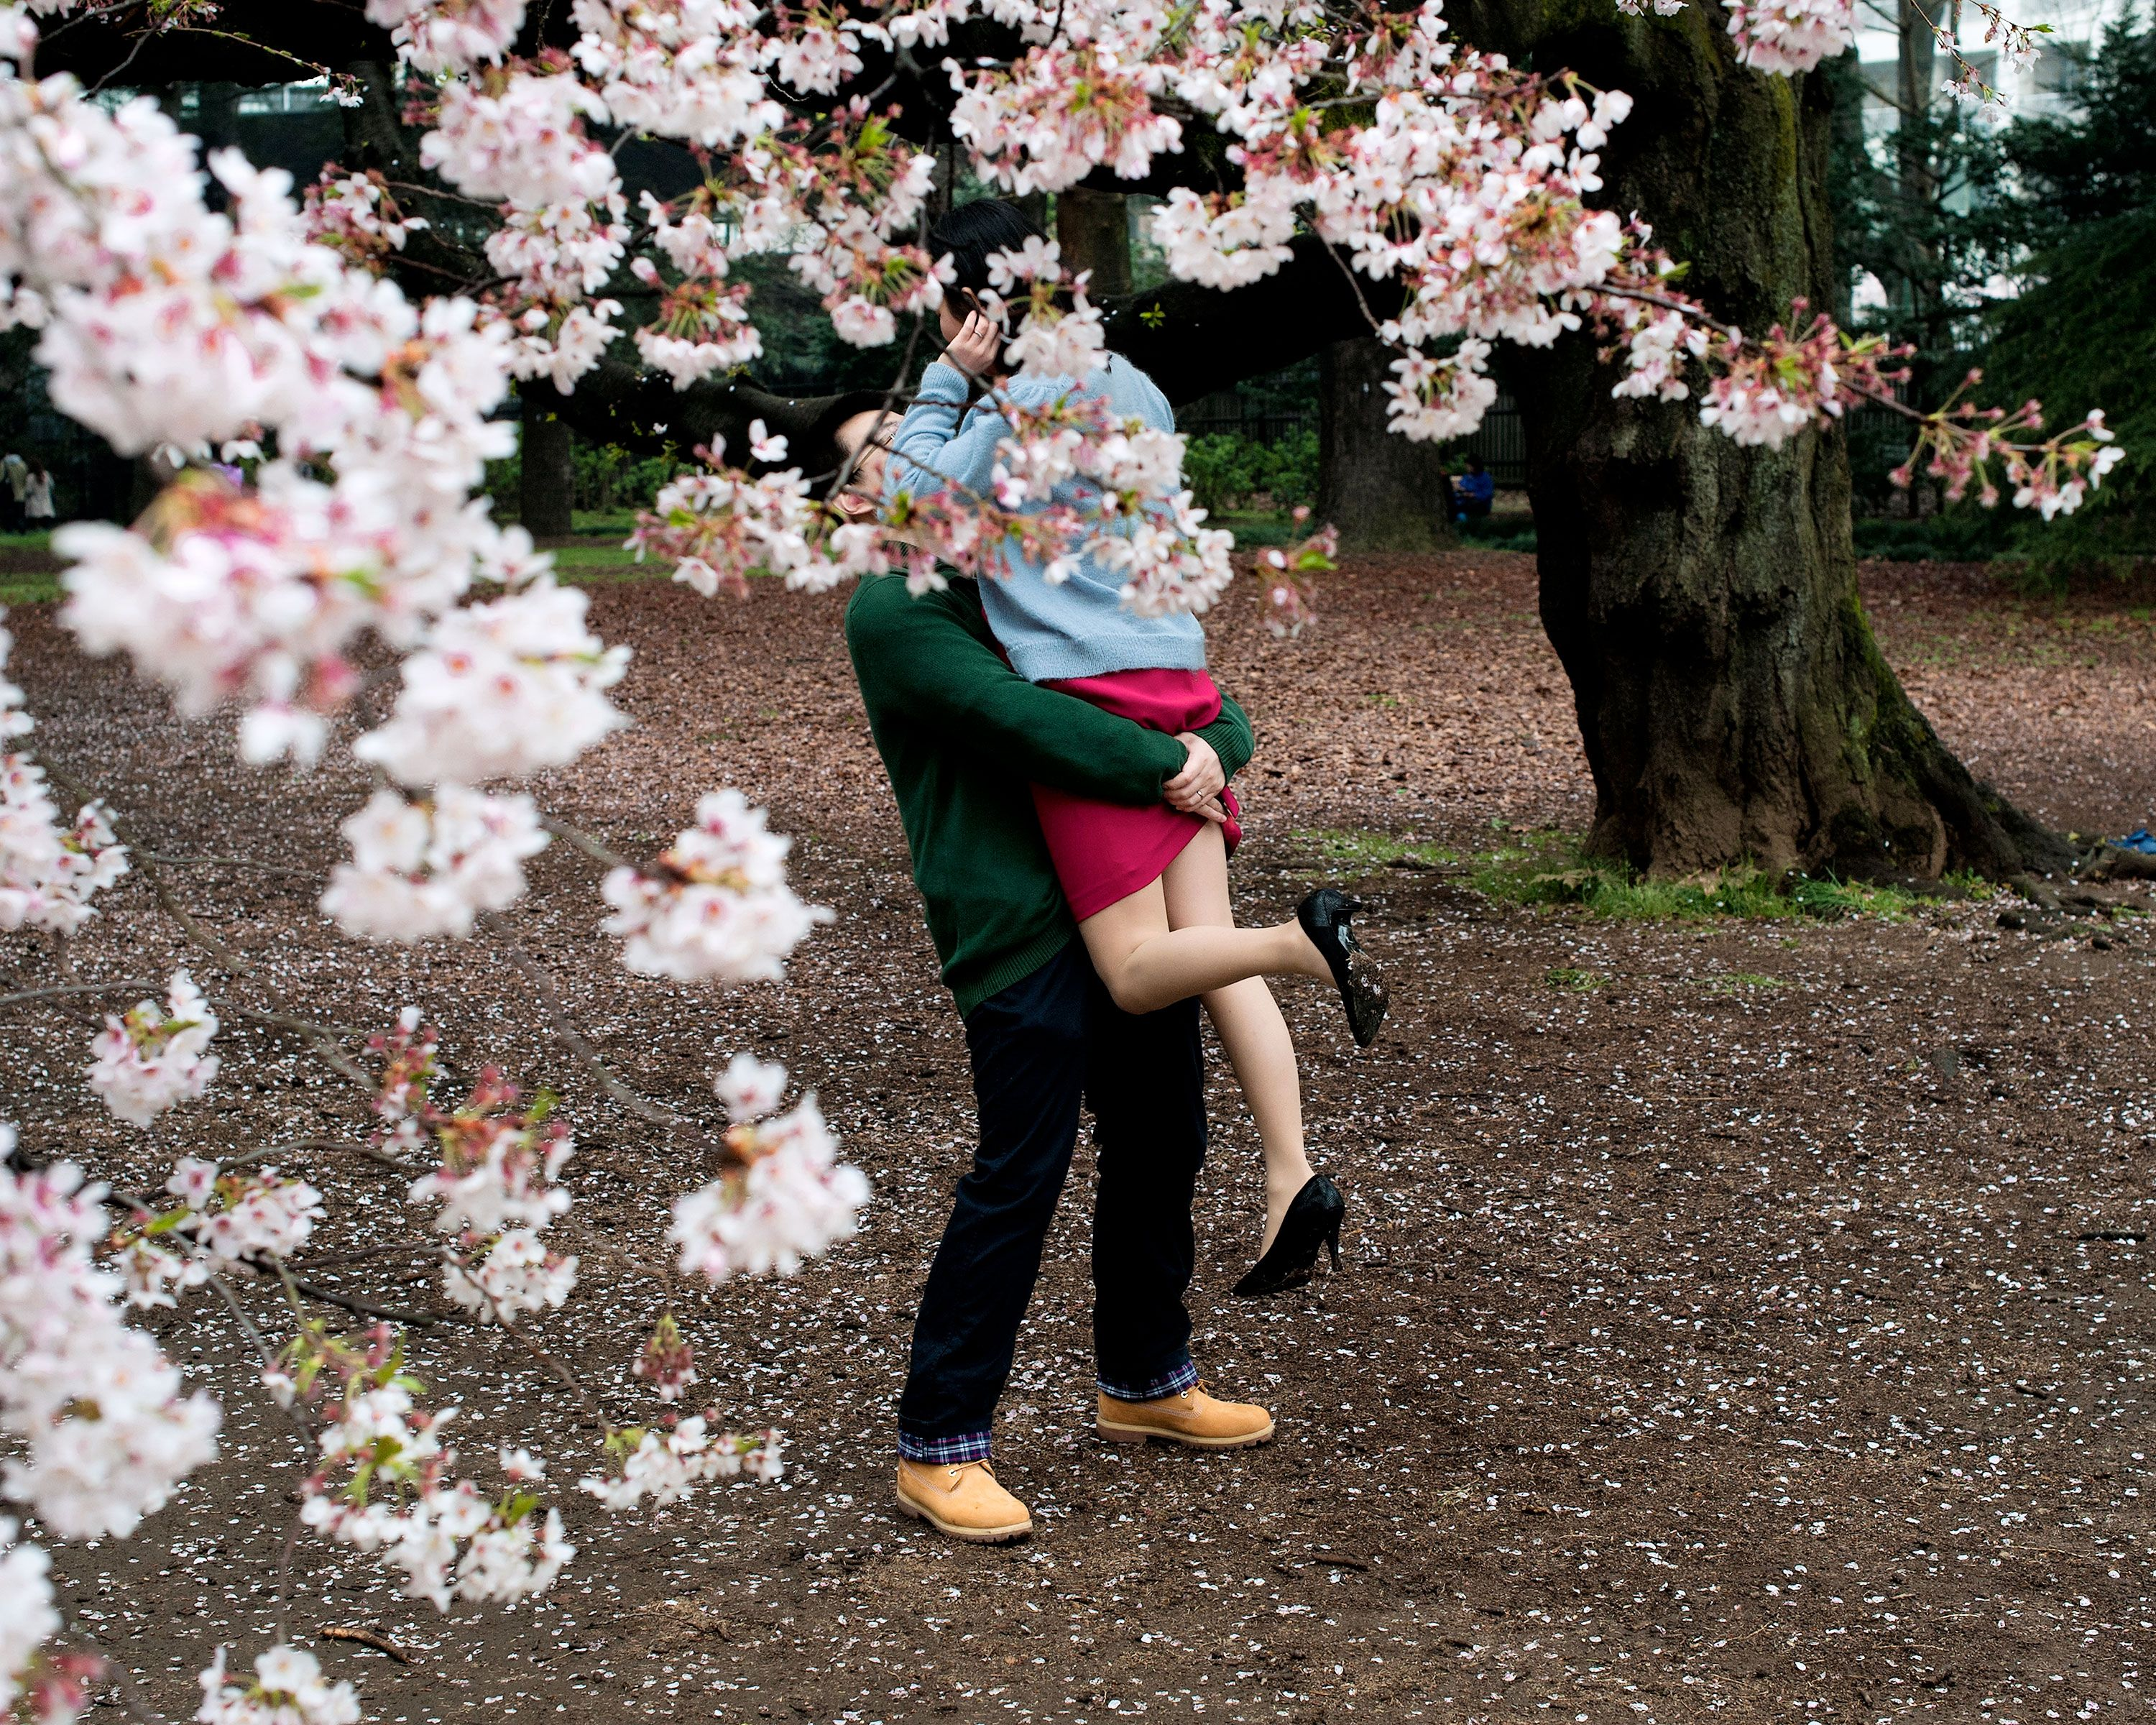 Embrace Spring With Pictures Of Japan S Cherry Blossoms Japan Cherry Blossom Festival Japan Cherry Blossom